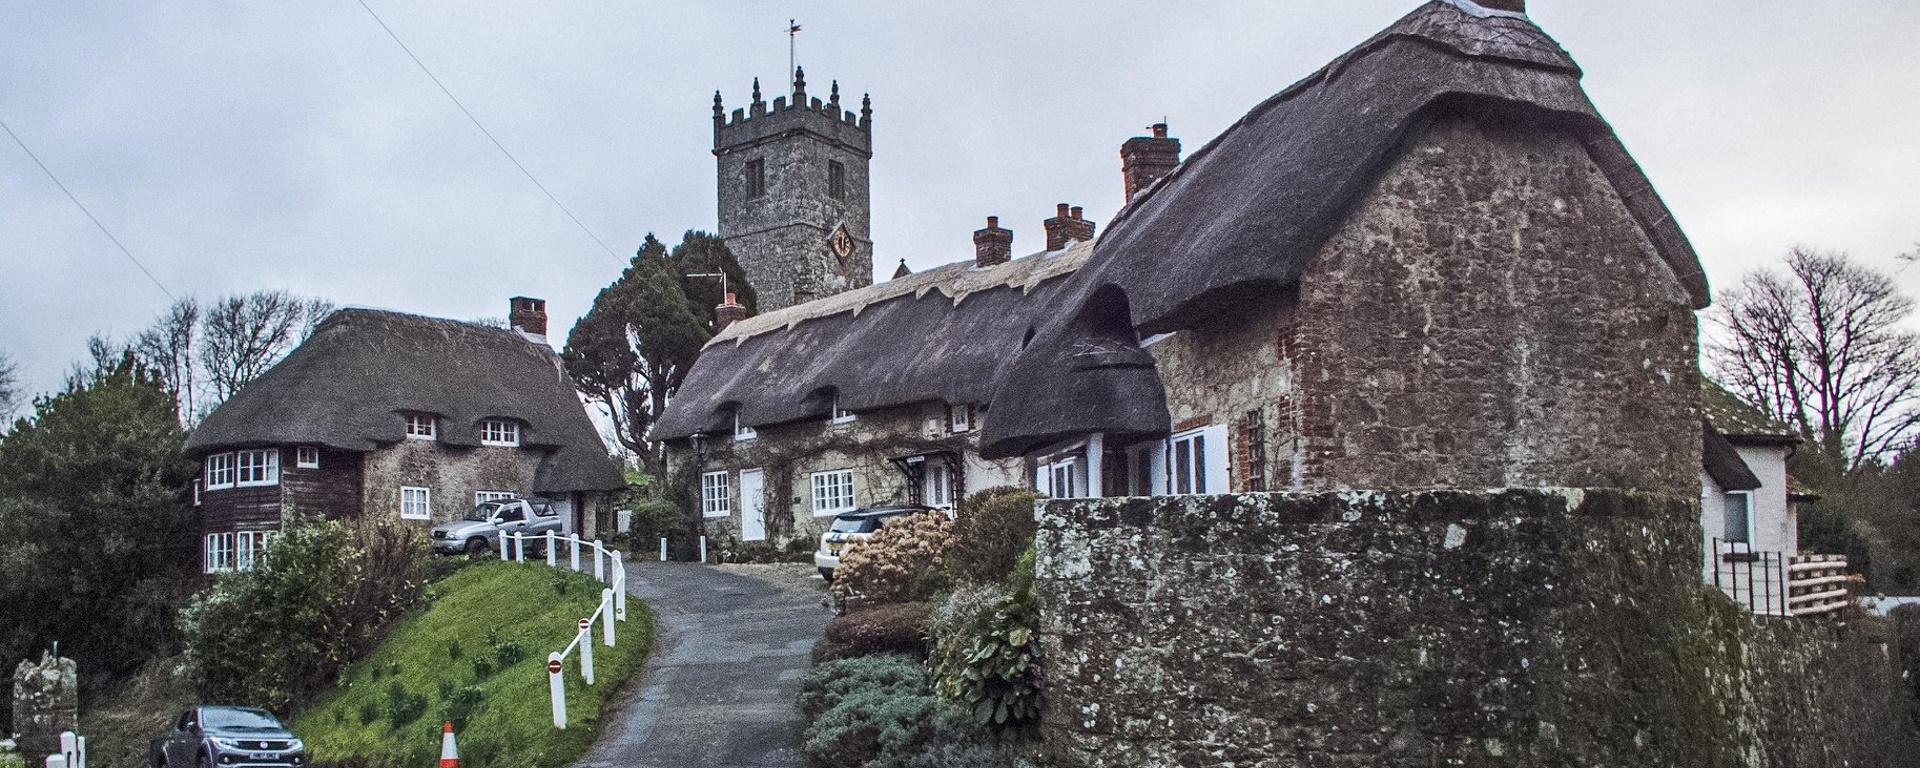 Cottages and Church